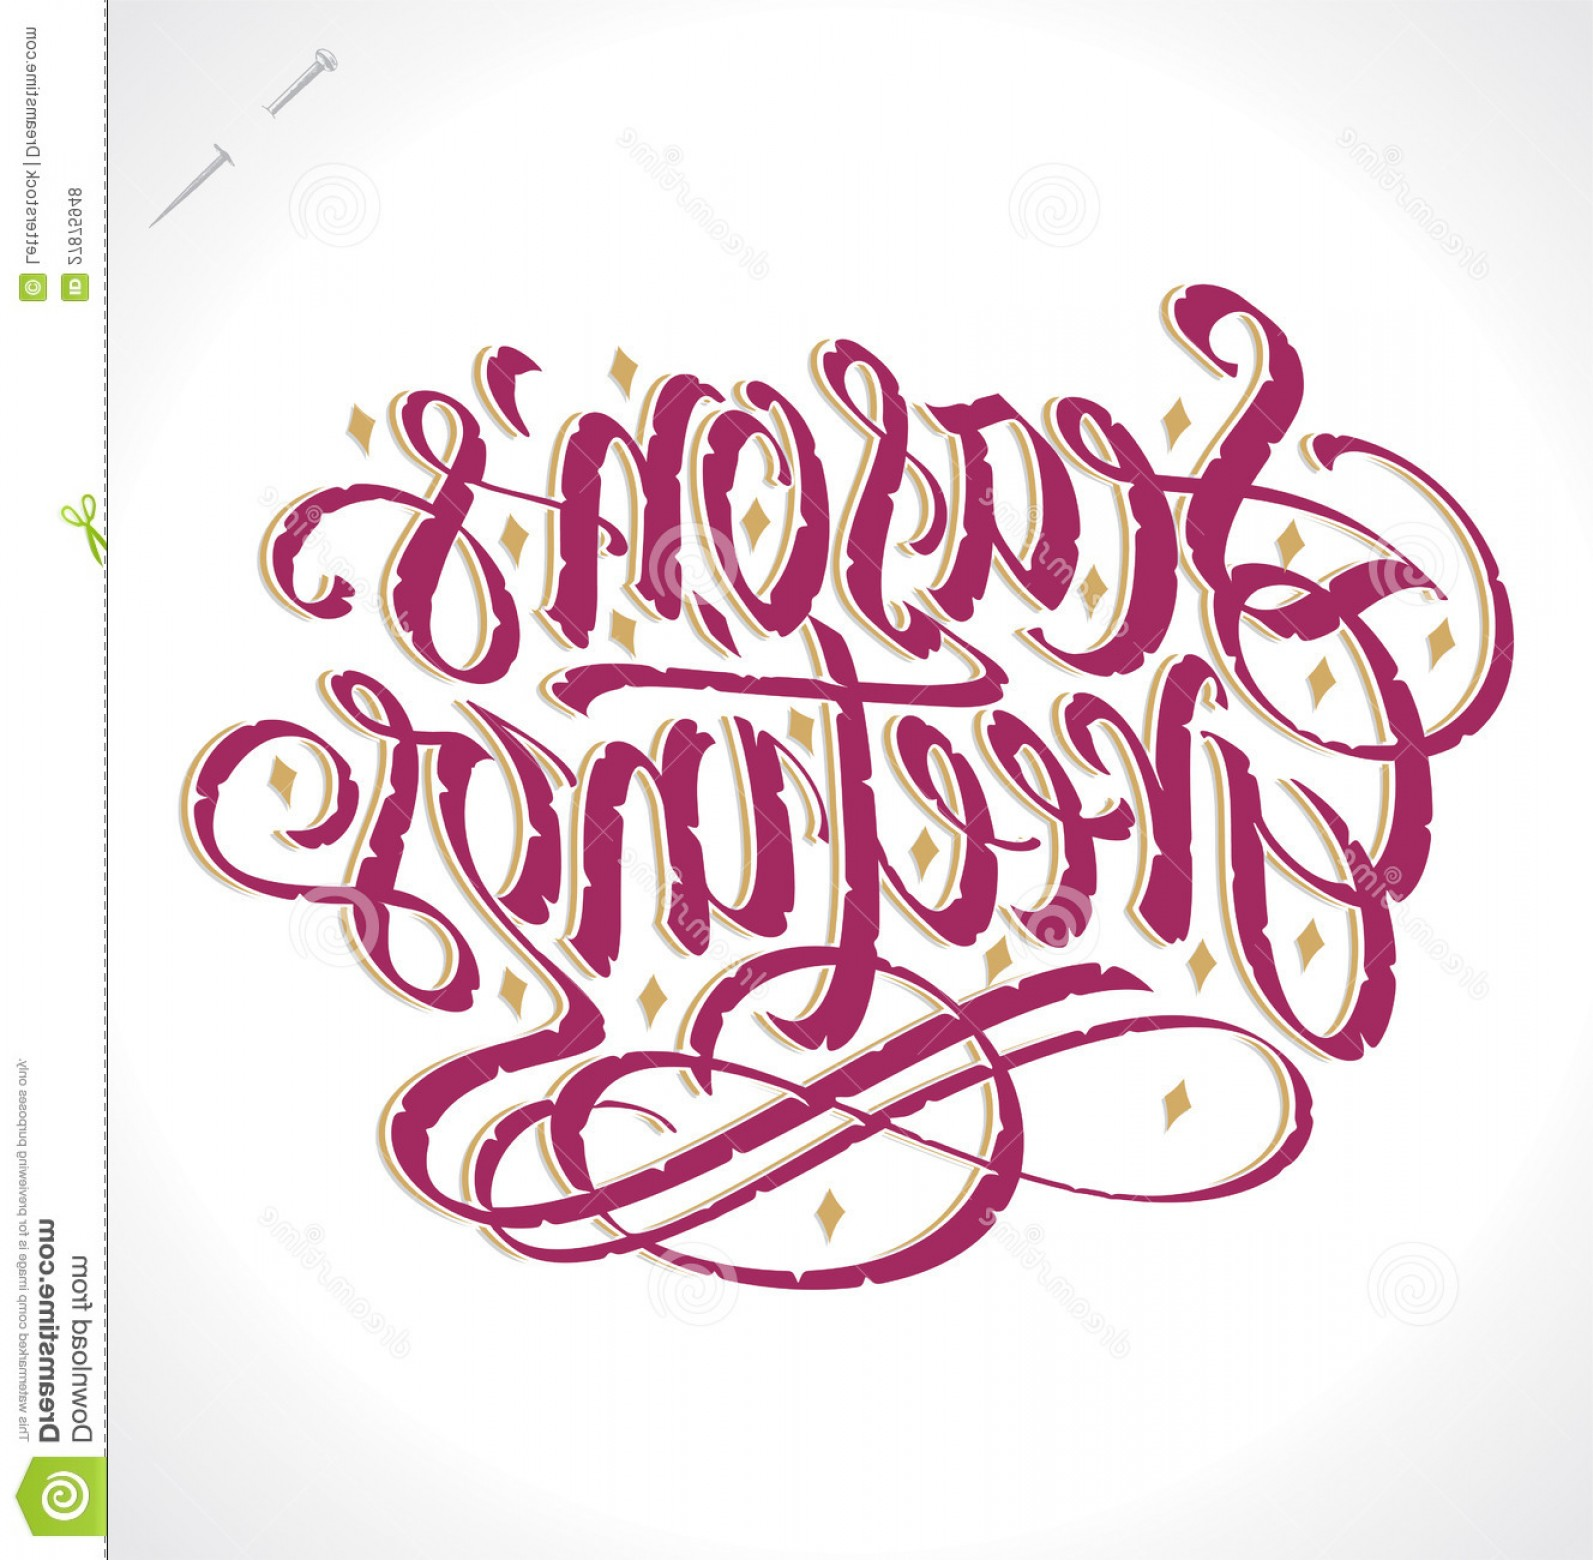 Season S Greetings Vector Free: Royalty Free Stock Photos Seasons Greetings Hand Lettering Vector Image